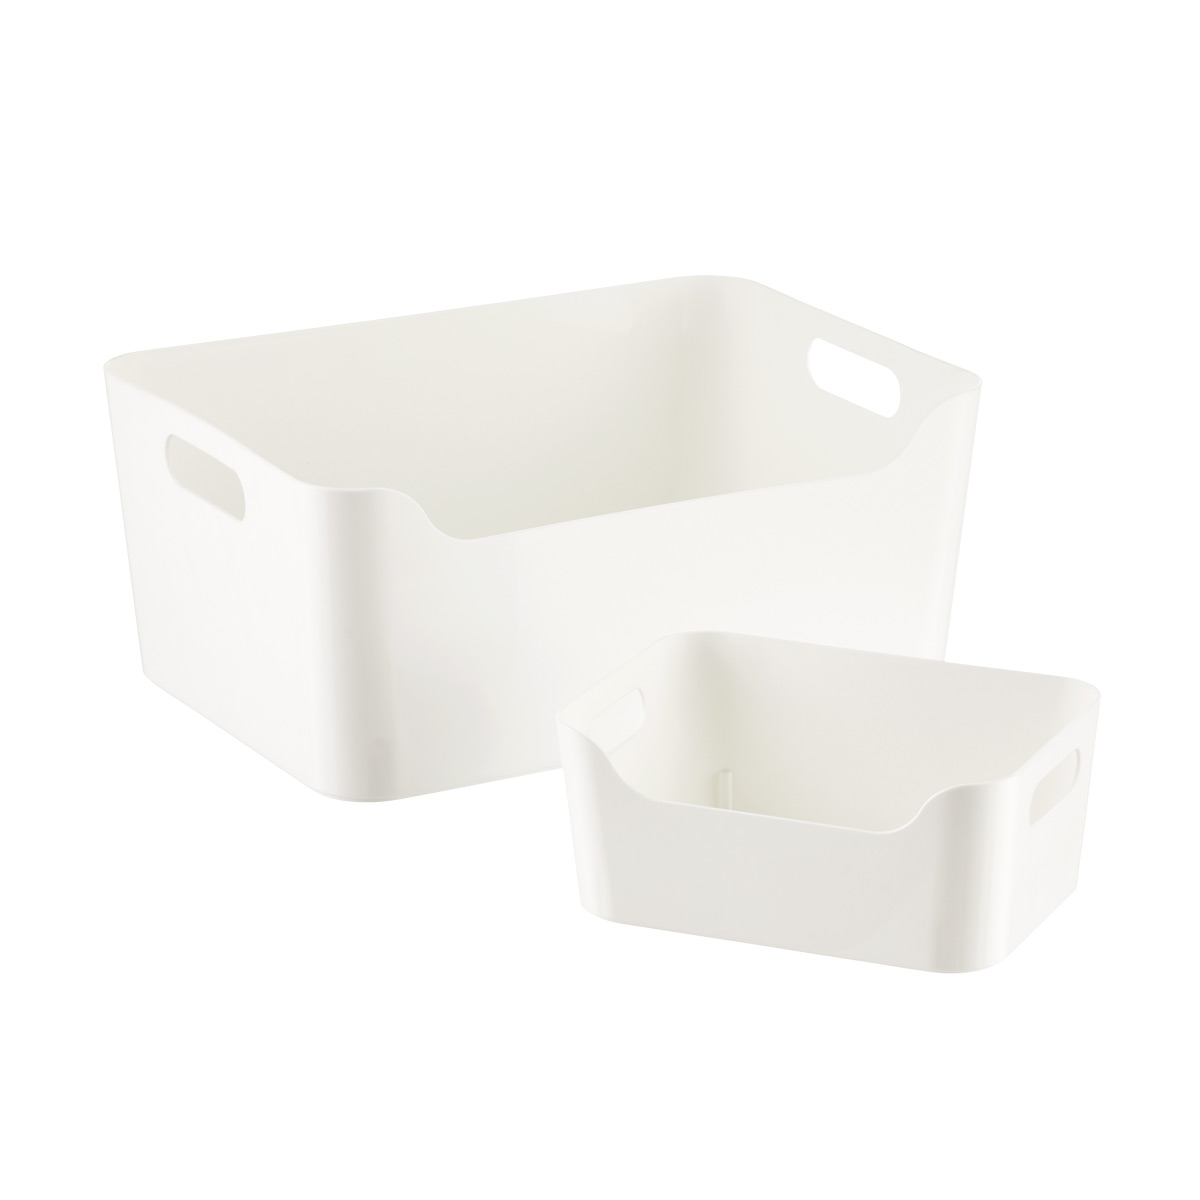 White Plastic Storage Bins with Handles  sc 1 st  The Container Store : white plastic storage bins  - Aquiesqueretaro.Com